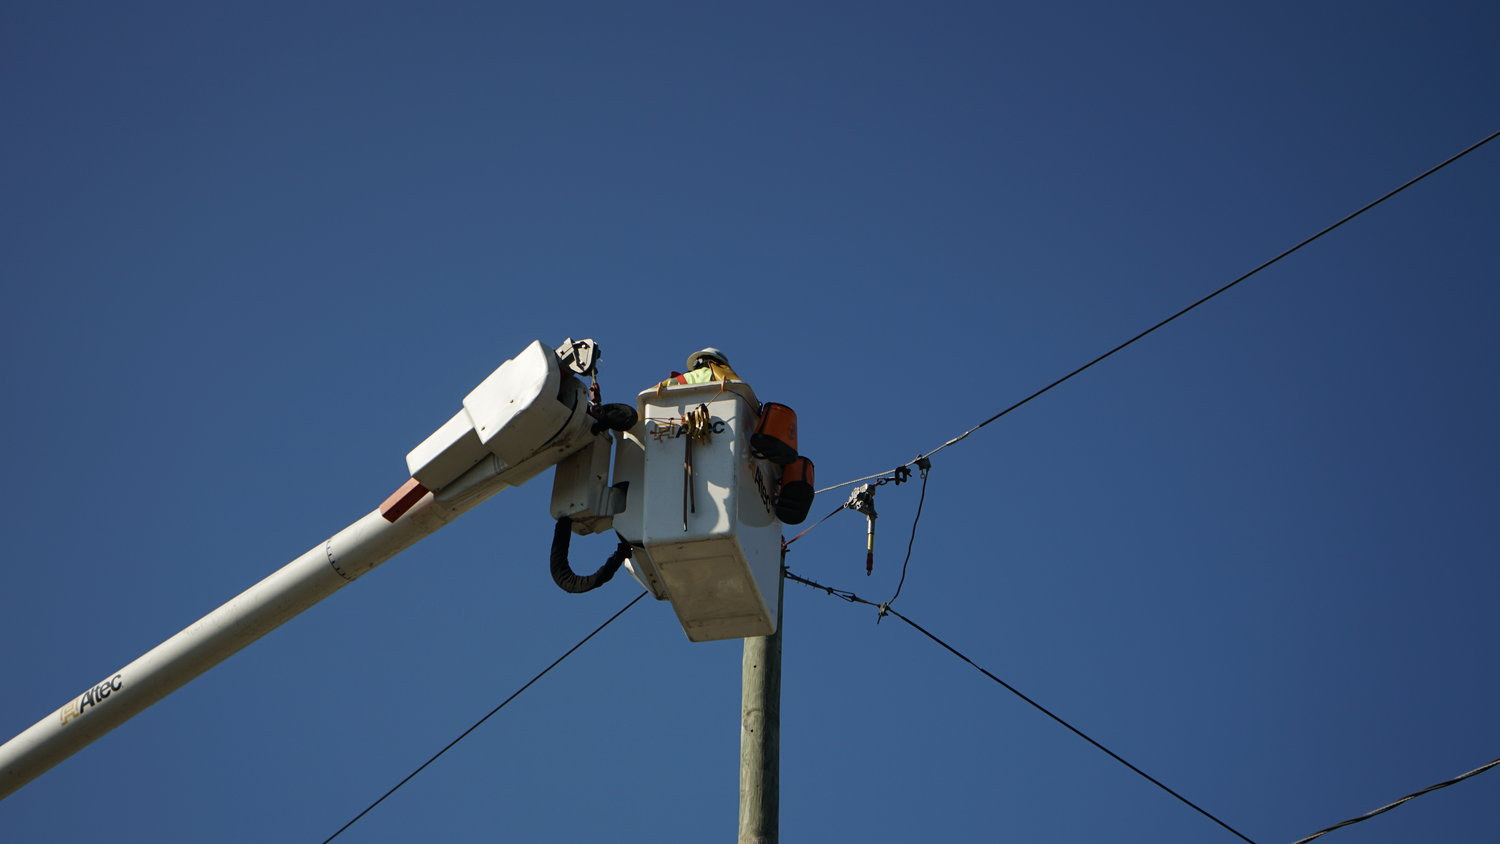 A PSEG Long Island worker began repairs on power lines at around 9 a.m.